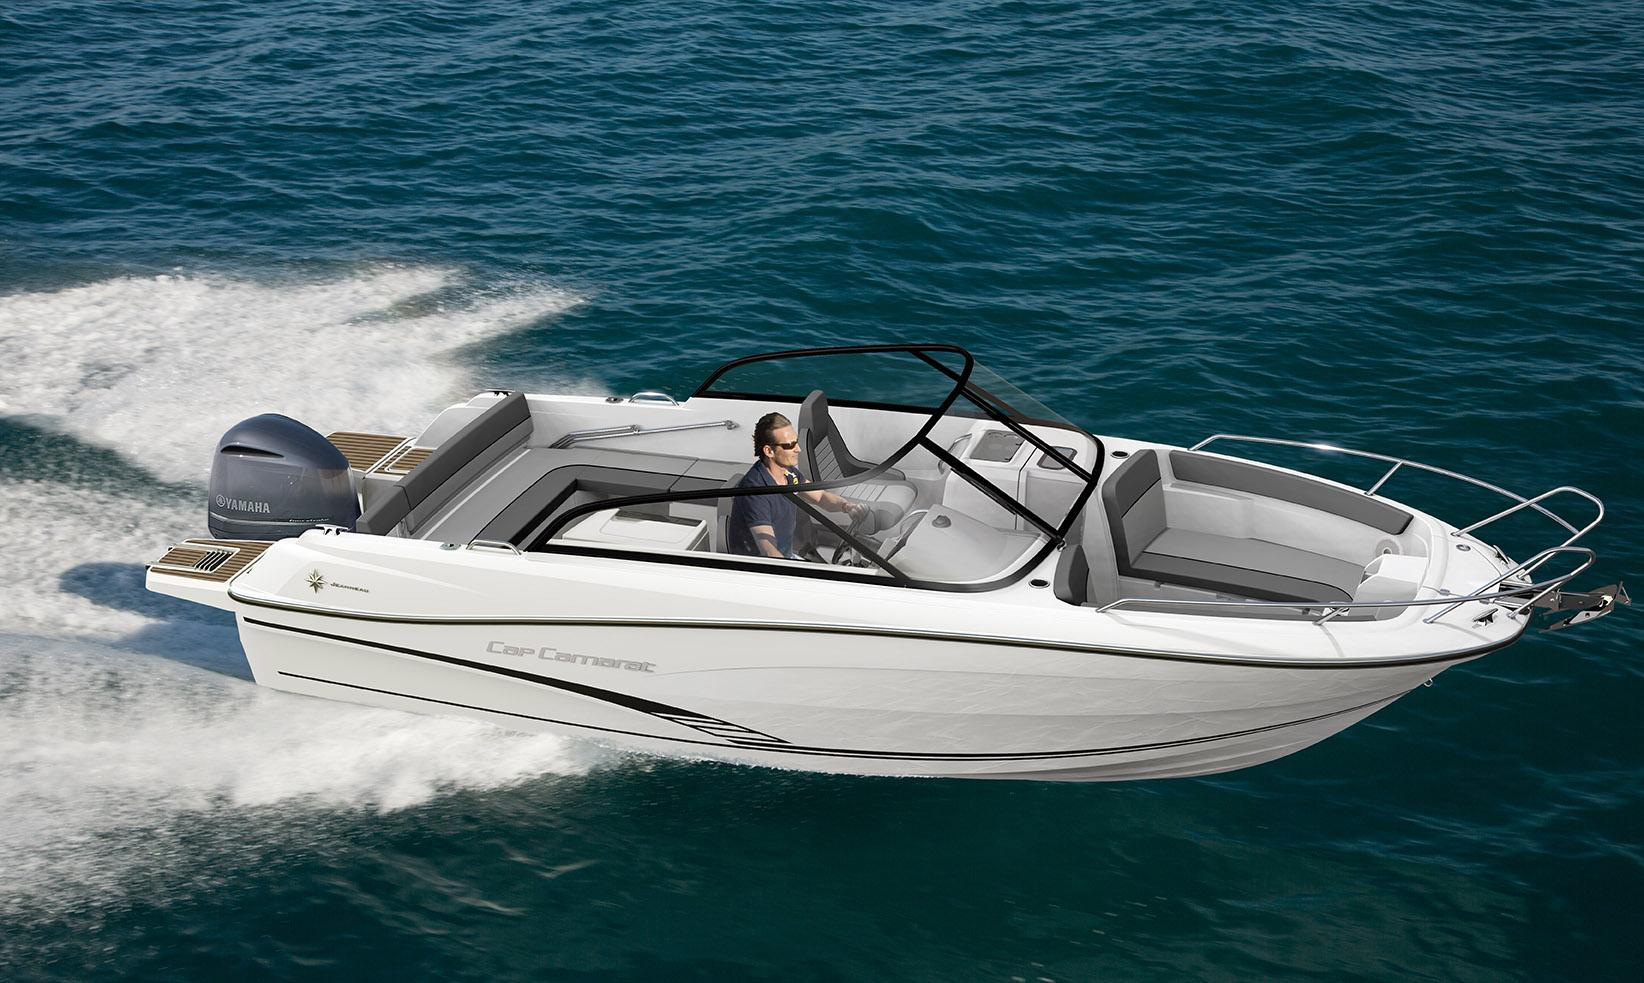 NEW JEANNEAU SAILBOATS AND POWERBOATS